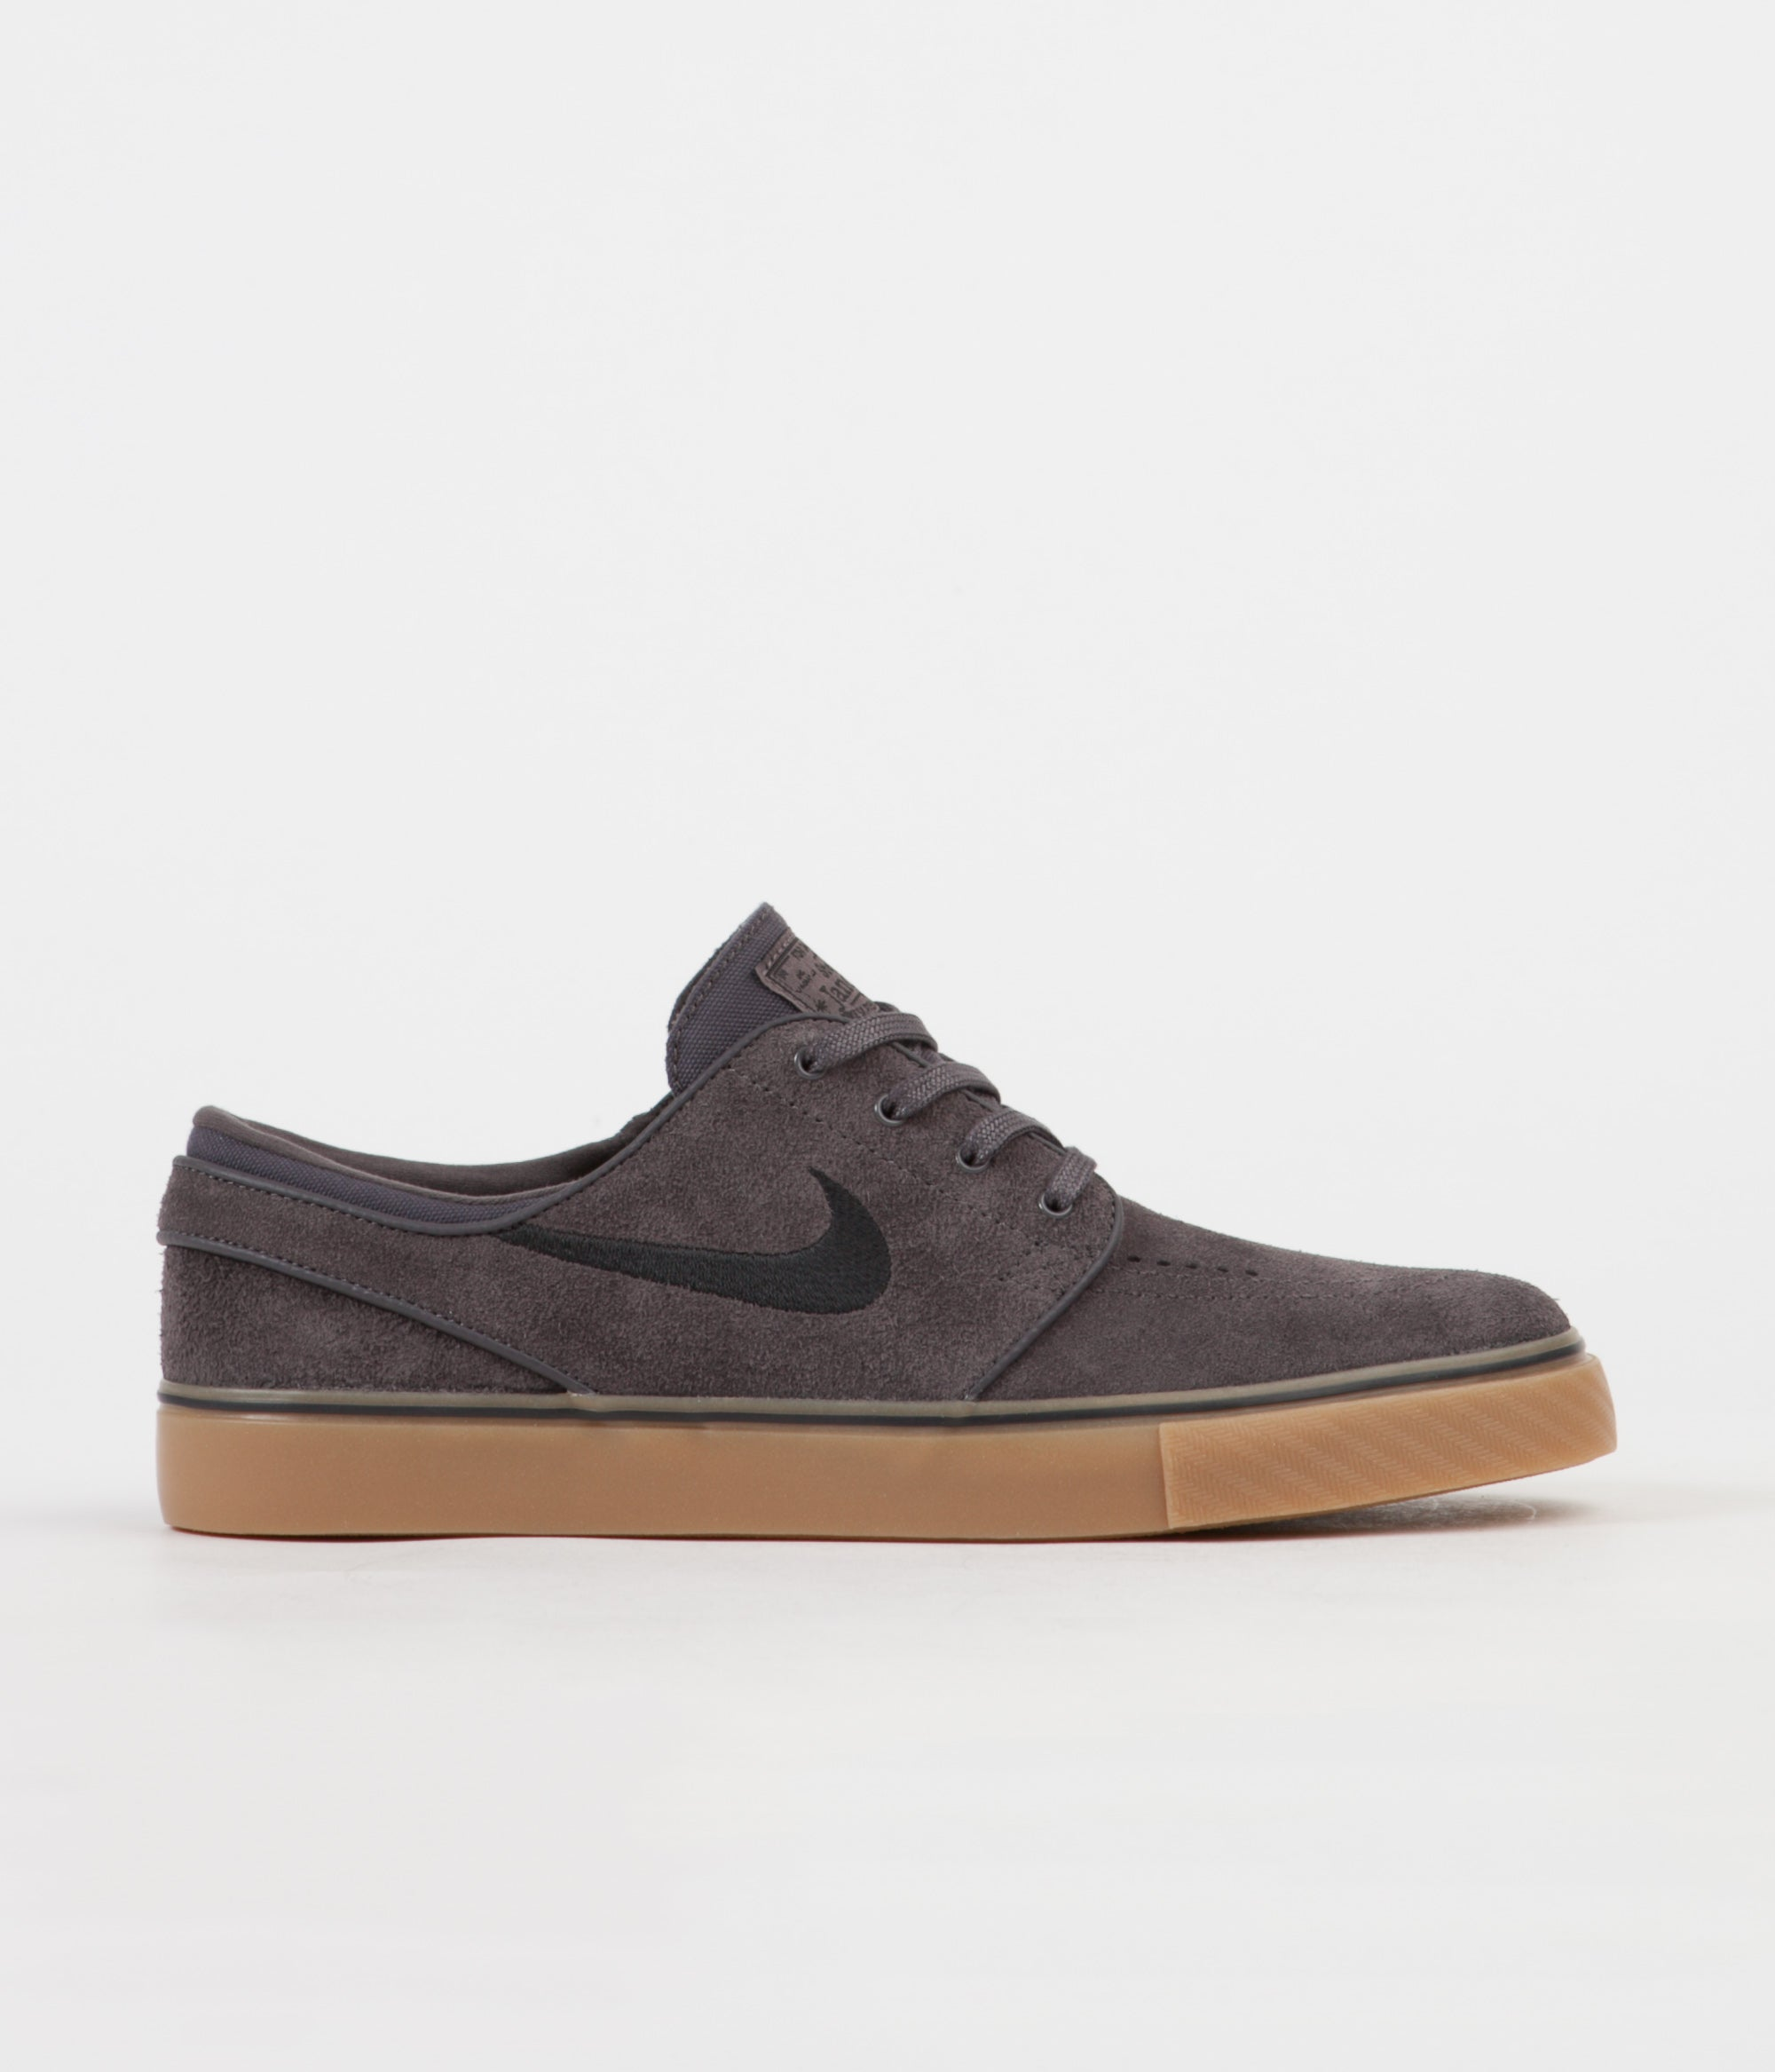 Nike SB ZOOM STEFAN JANOSKI - Trainers - thunder grey/black/light brown lXRUF